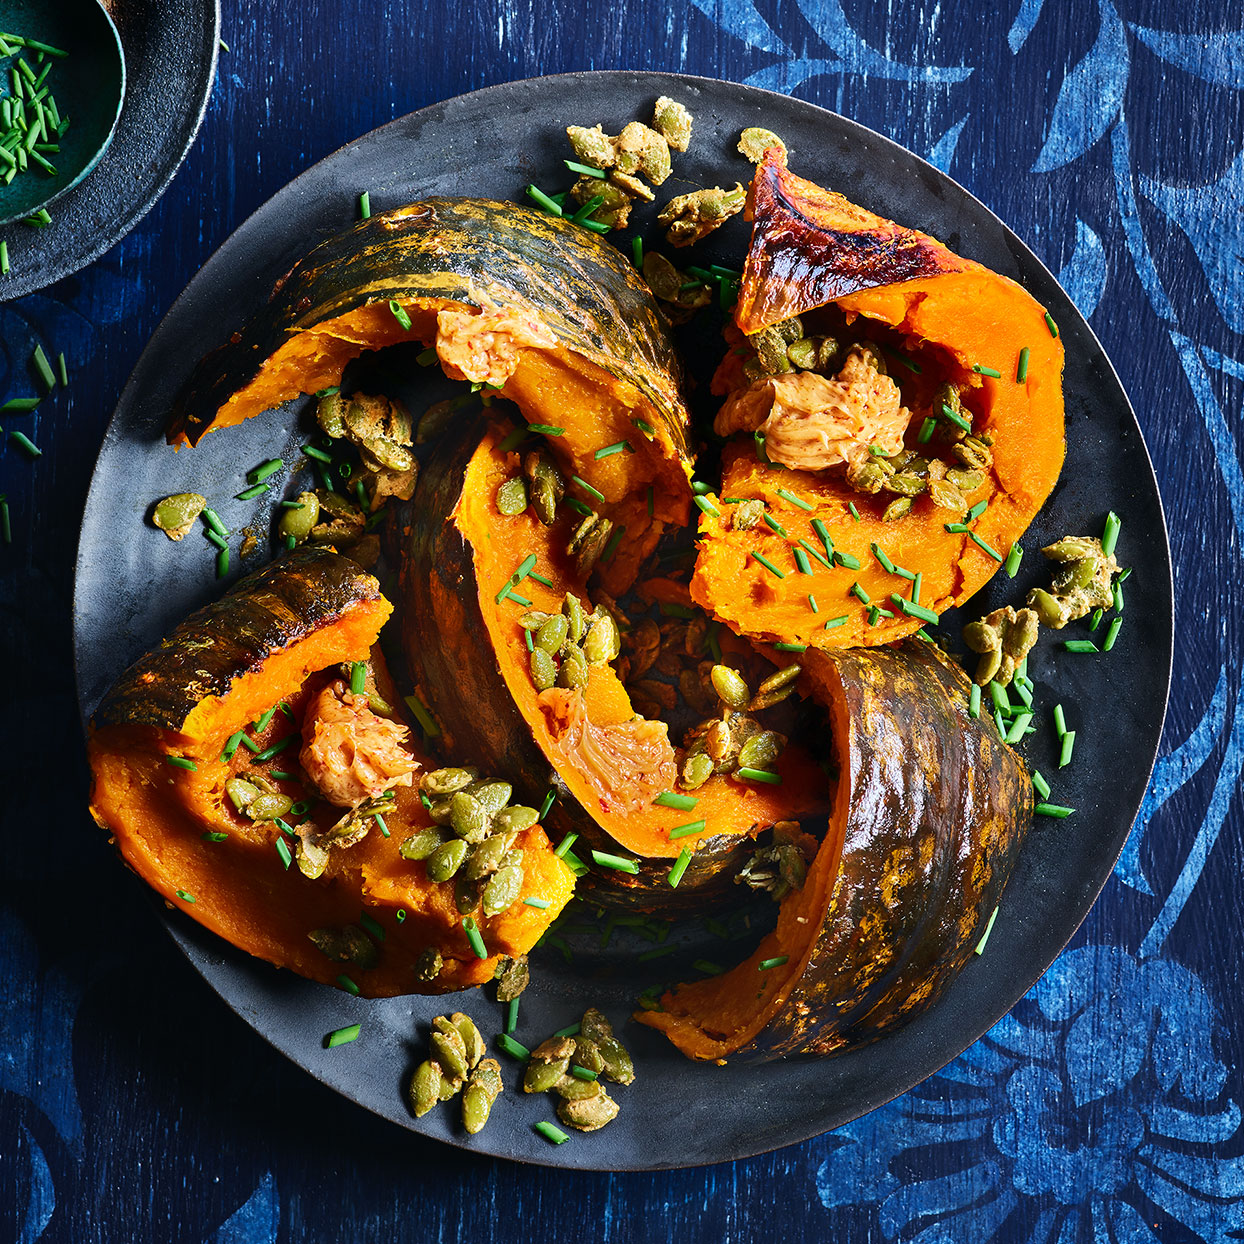 Roasted Kabocha Squash with Umami Butter & Candied Pepitas